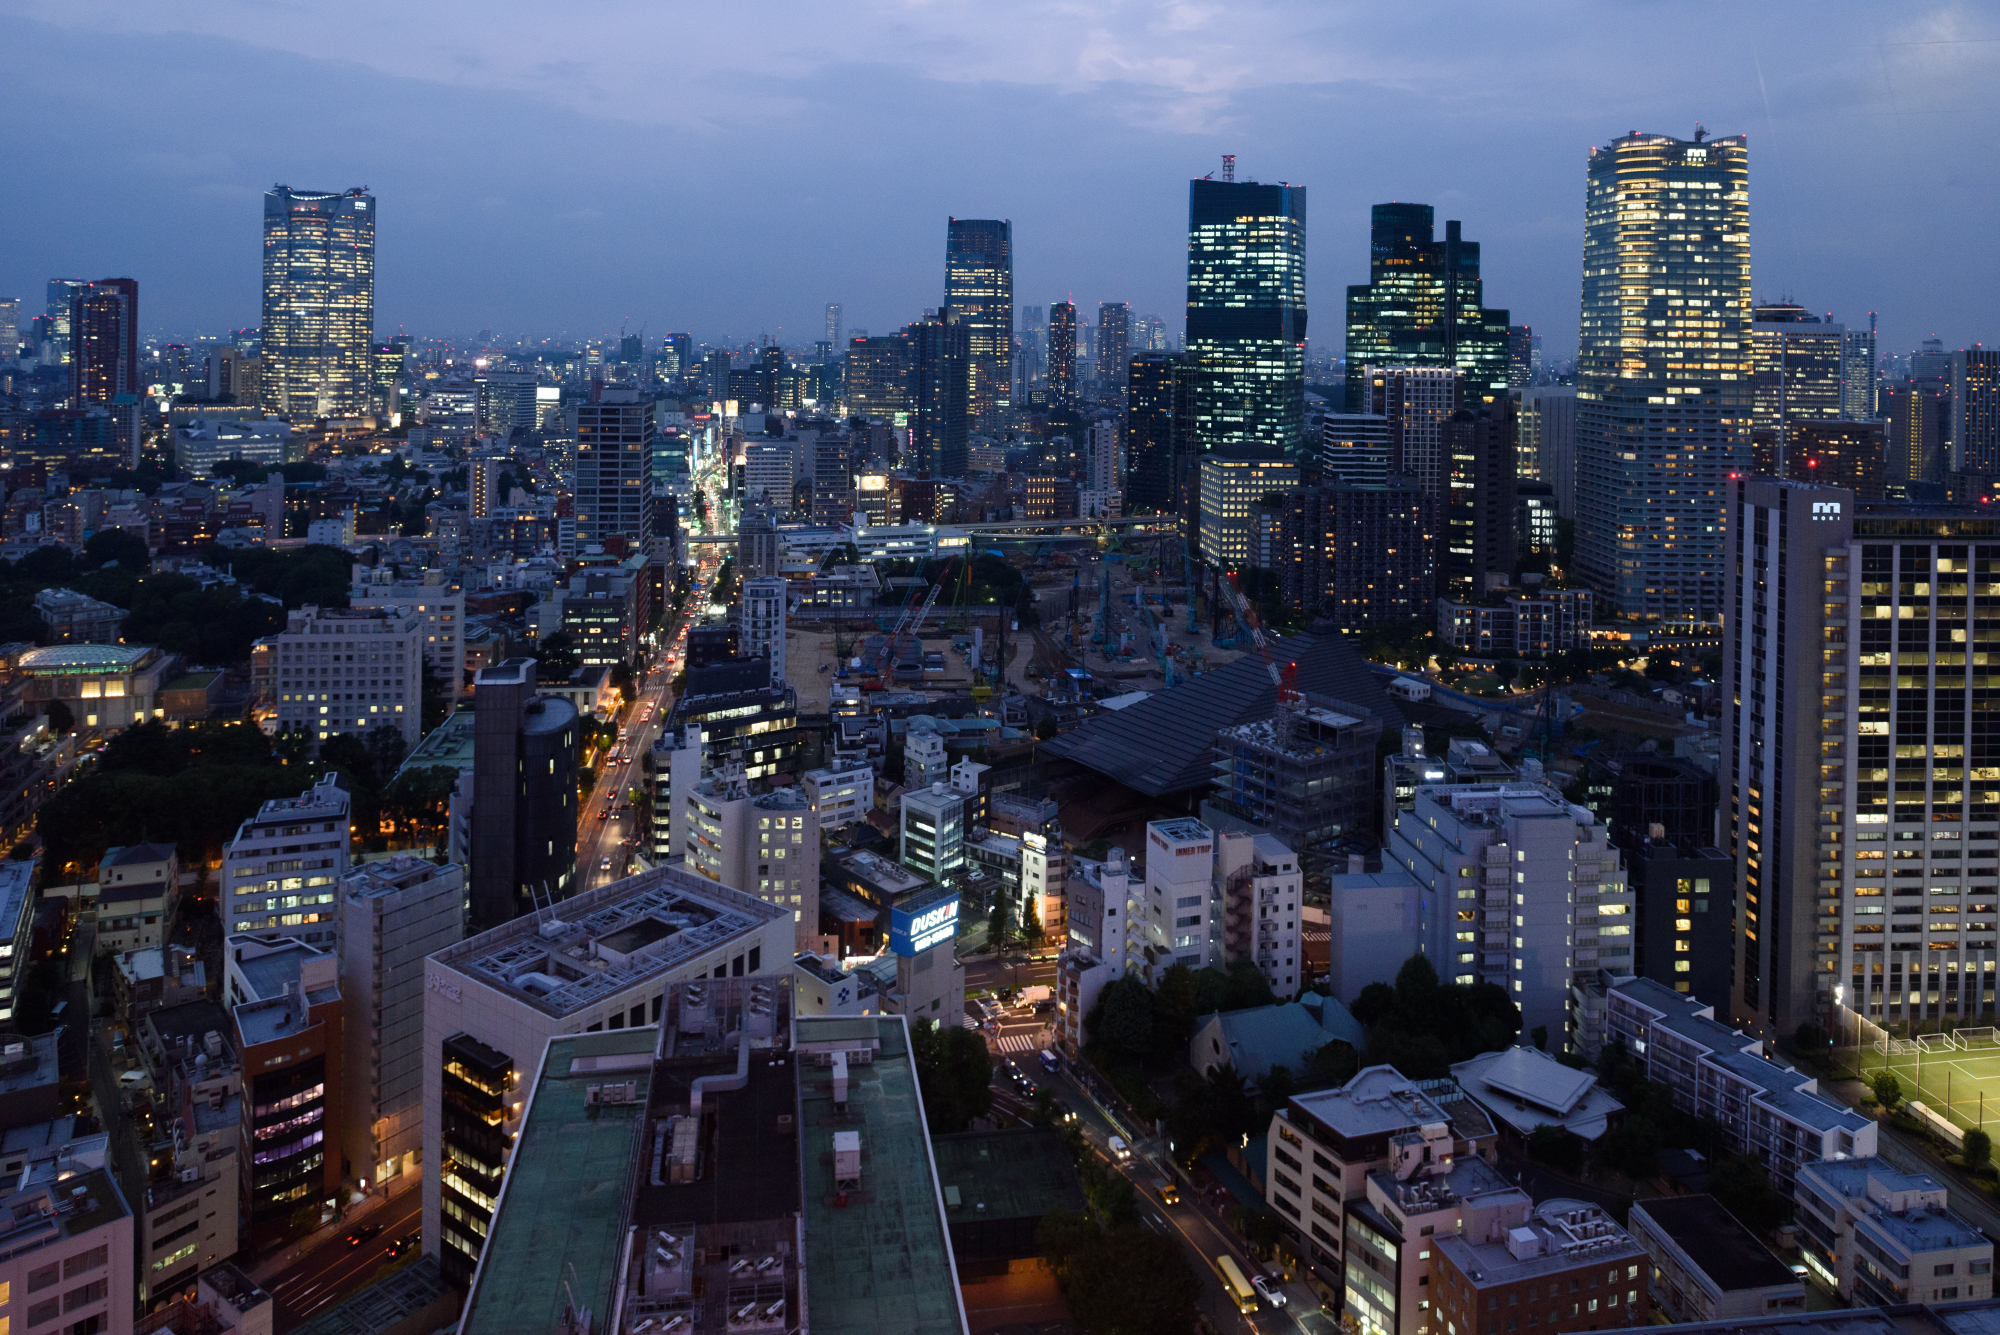 Buildings are illuminated at night in Tokyo earlier this month. | BLOOMBERG